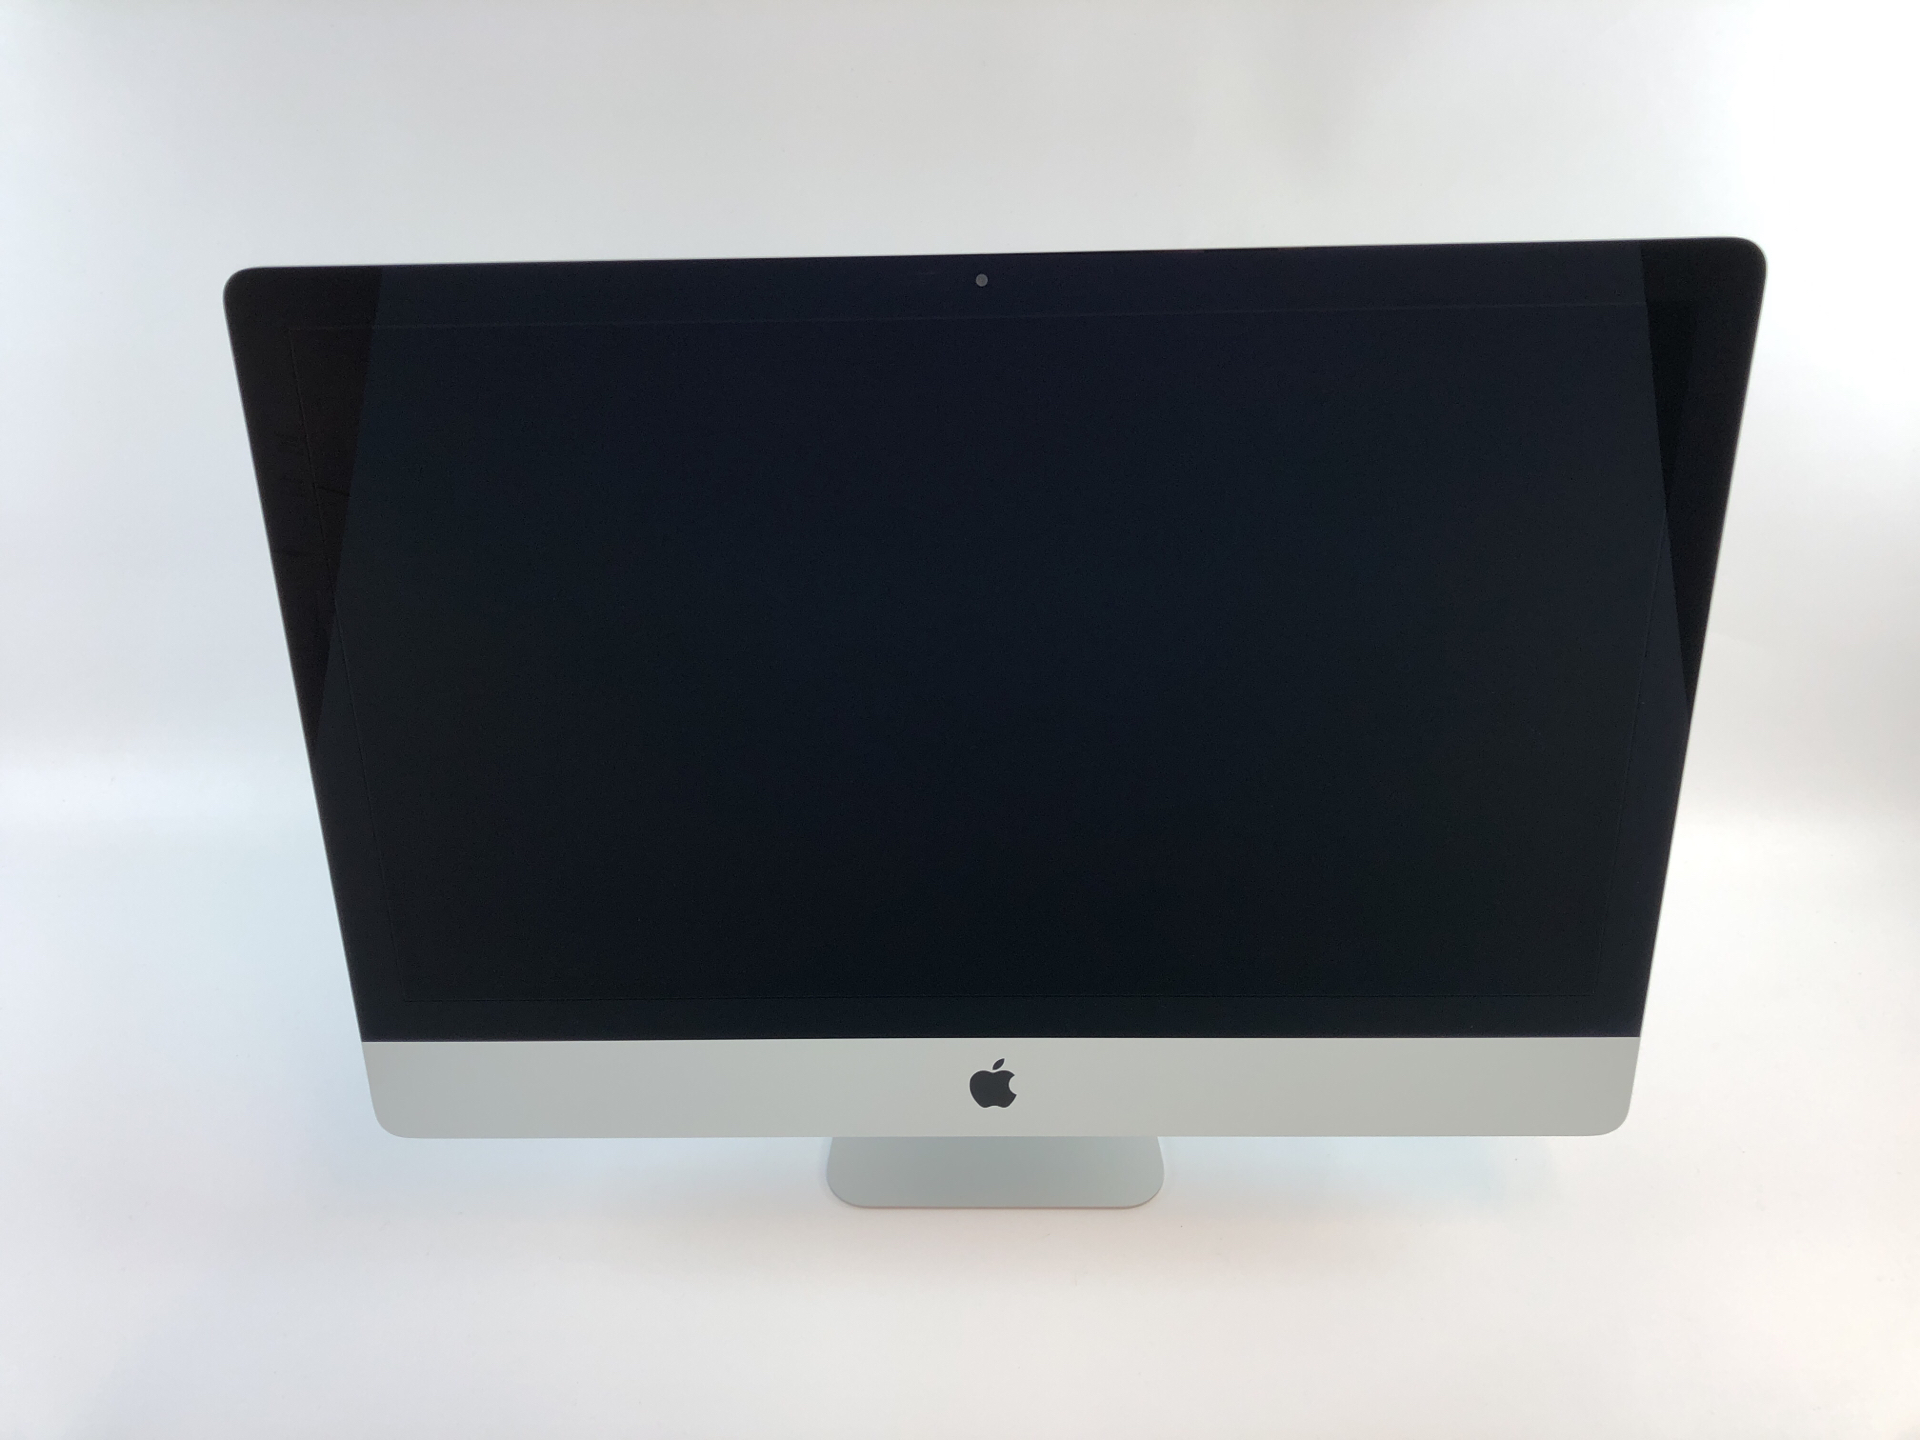 "iMac 27"" Retina 5K Late 2015 (Intel Quad-Core i5 3.2 GHz 8 GB RAM 1 TB Fusion Drive), Intel Quad-Core i5 3.2 GHz, 8 GB RAM, 1 TB Fusion Drive, immagine 1"